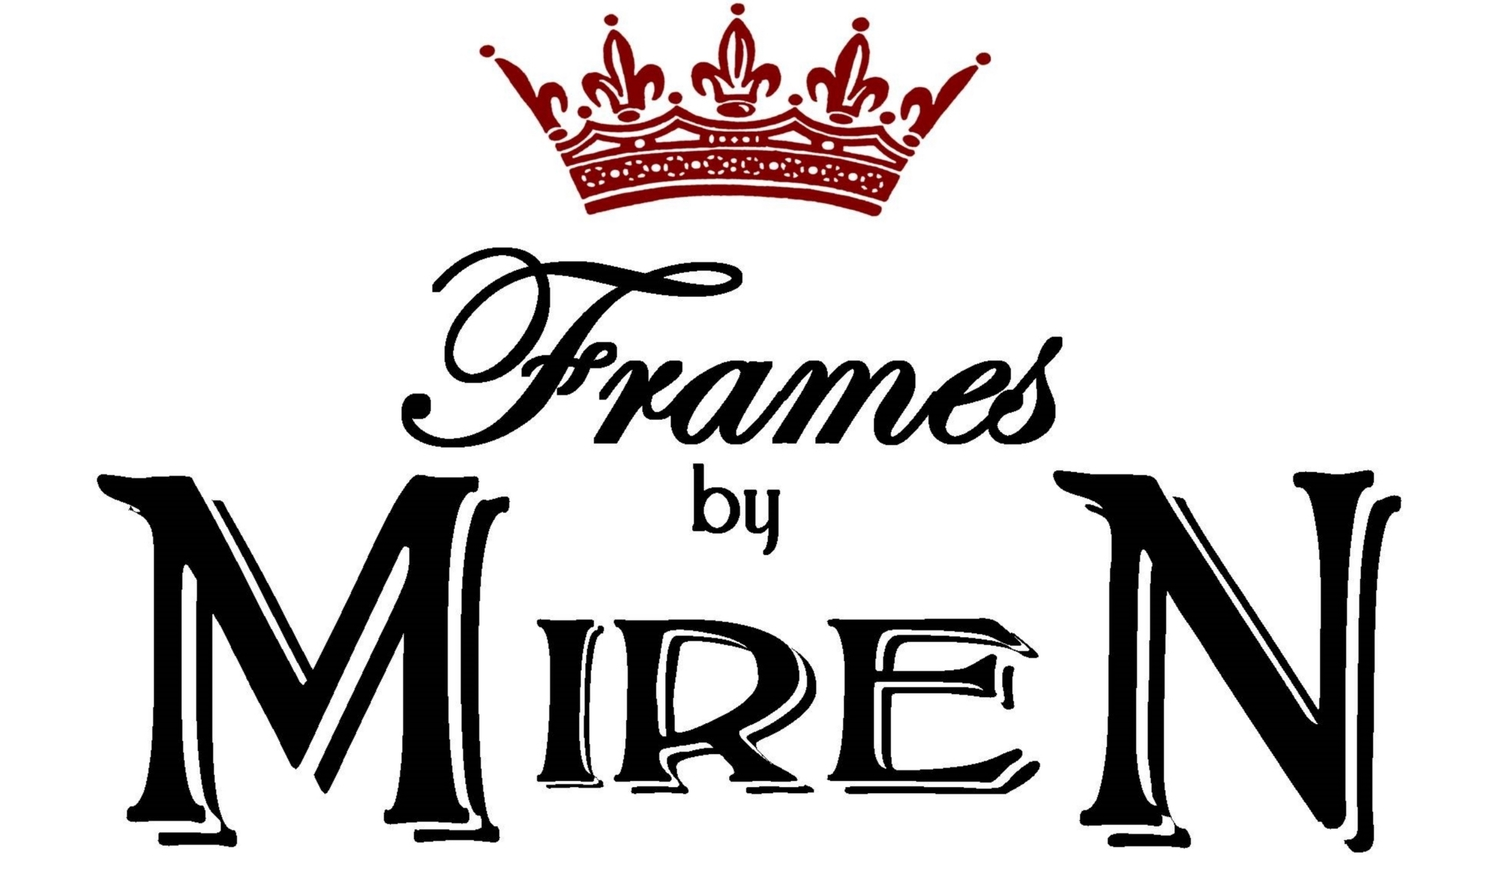 About — Frames by Miren